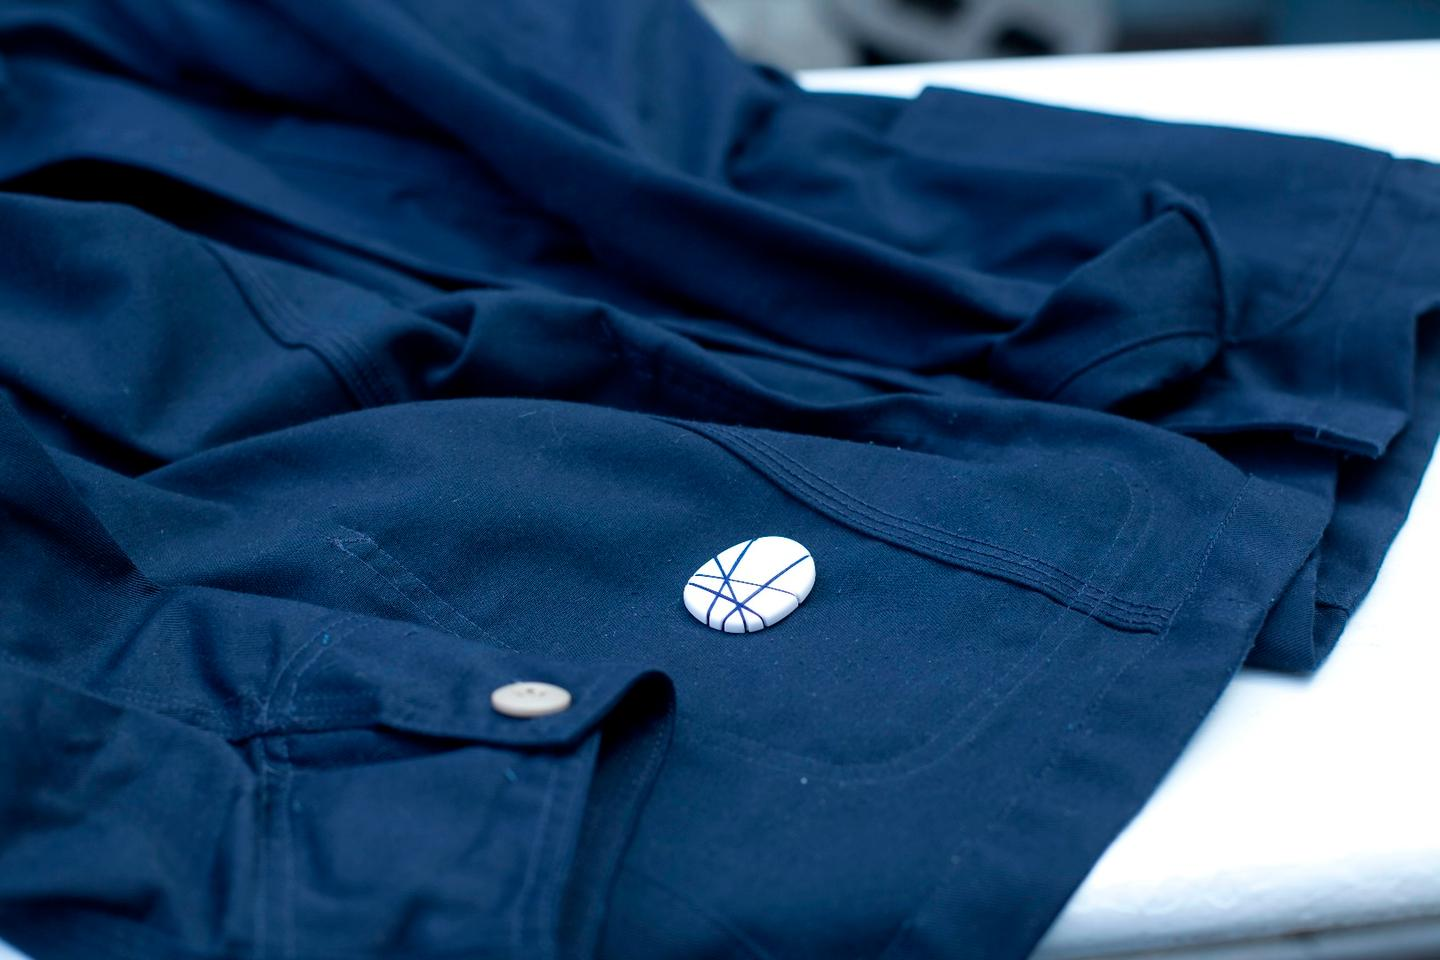 The O tracker can be sewn on fabrics